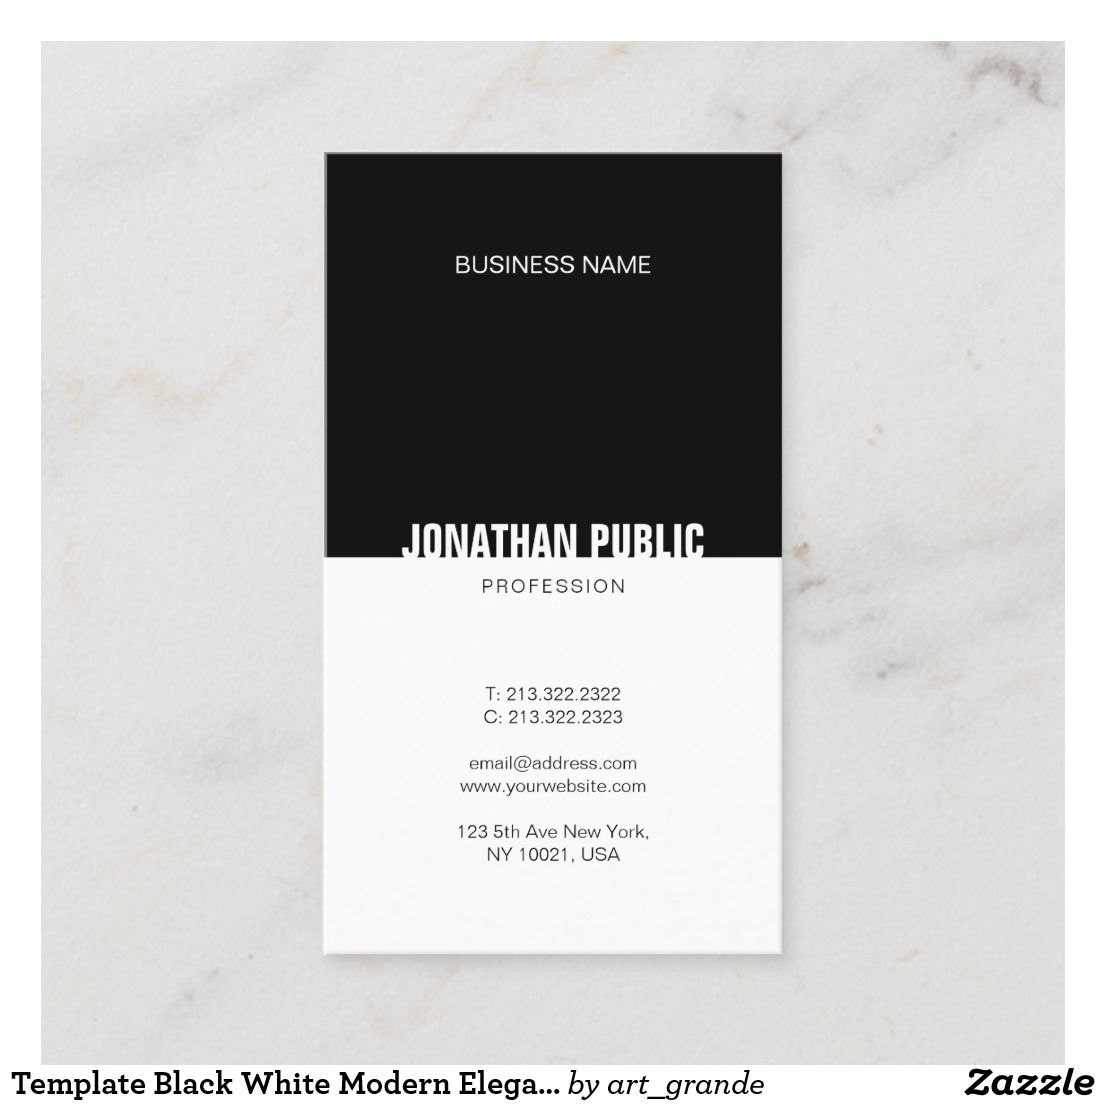 Template Black White Modern Elegant Professional Business Card Throughout Cards Against Humanity Template